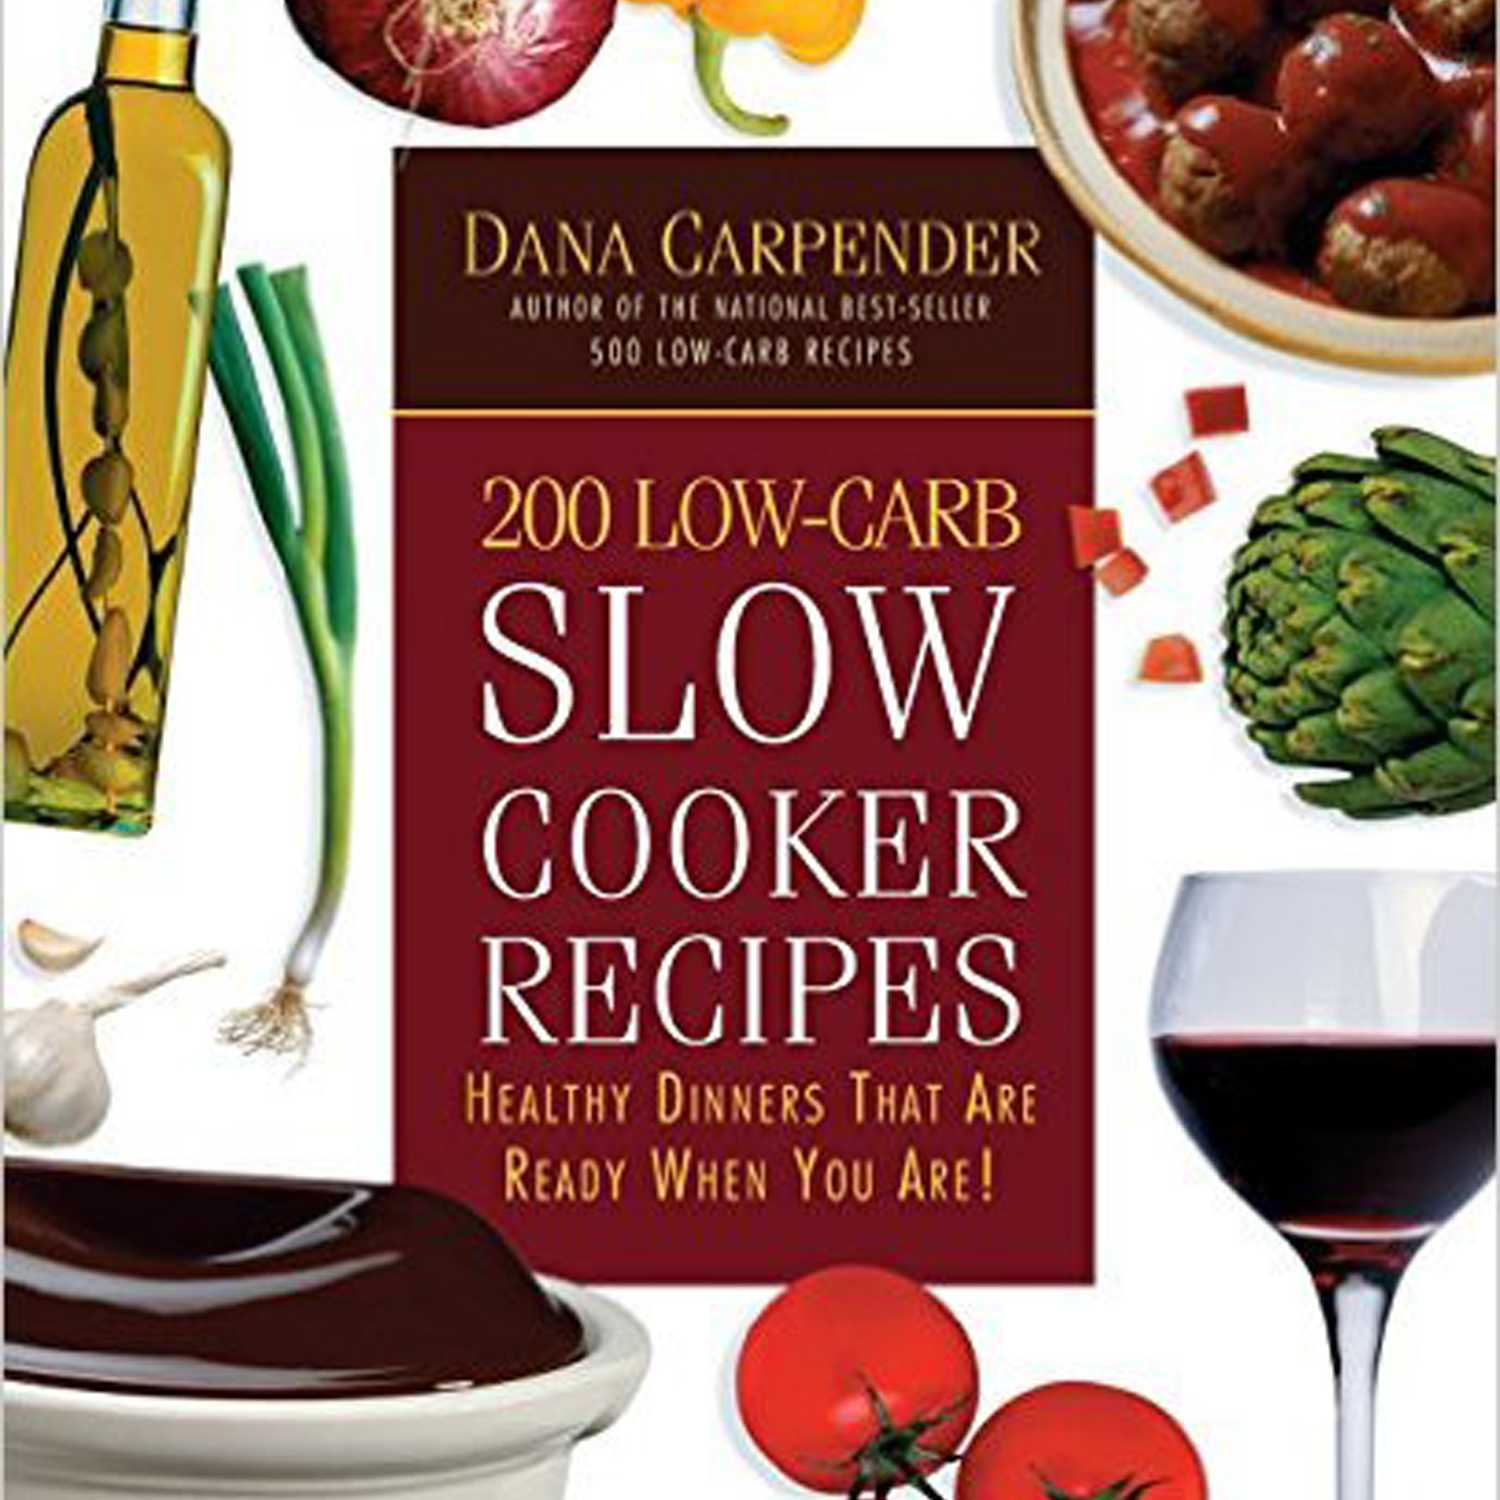 200 Low-Card Slow Cooker Recipes